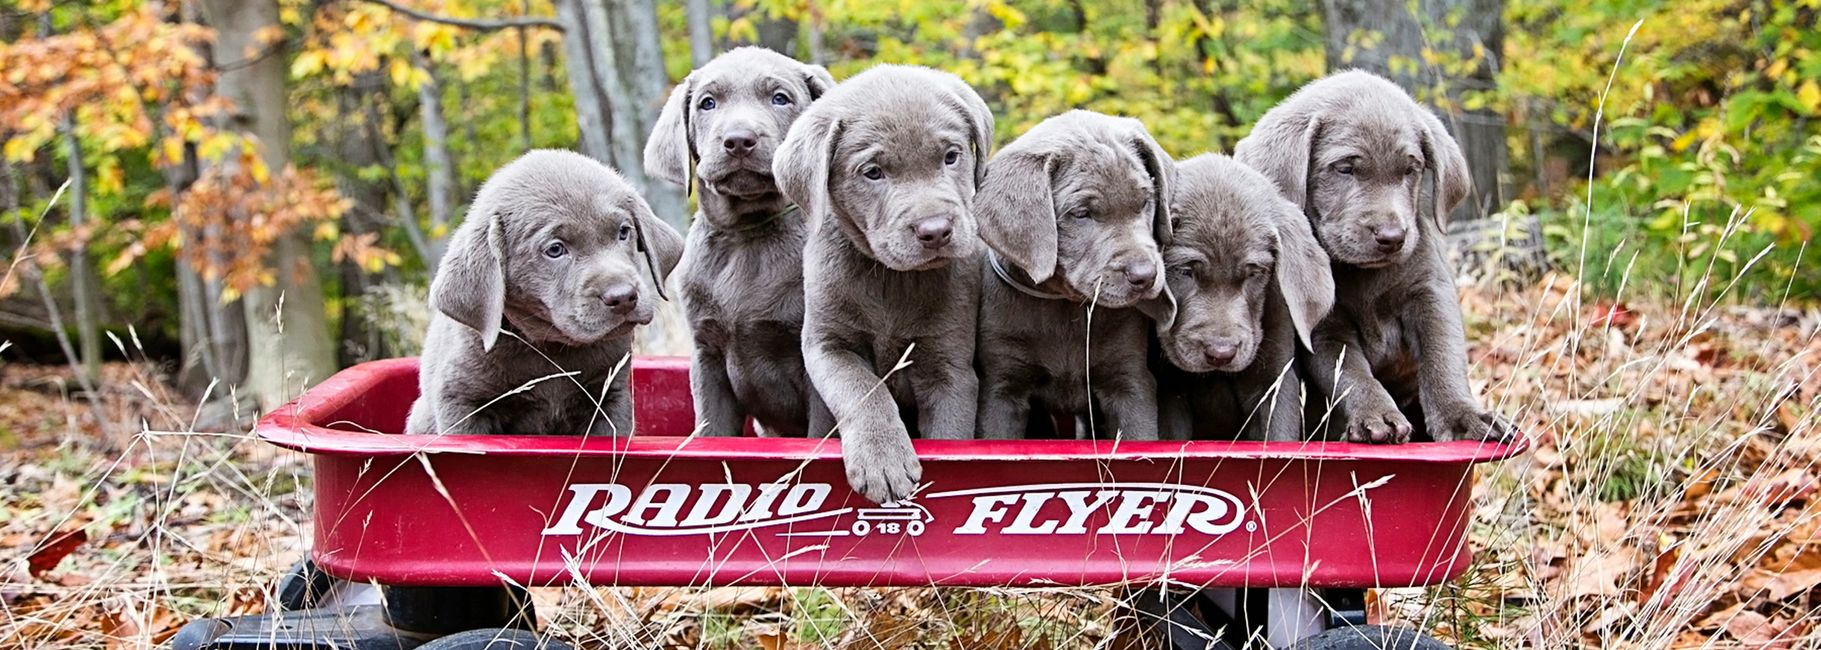 Silver Feathers Labradors Puppies Puppies Pets Labrador